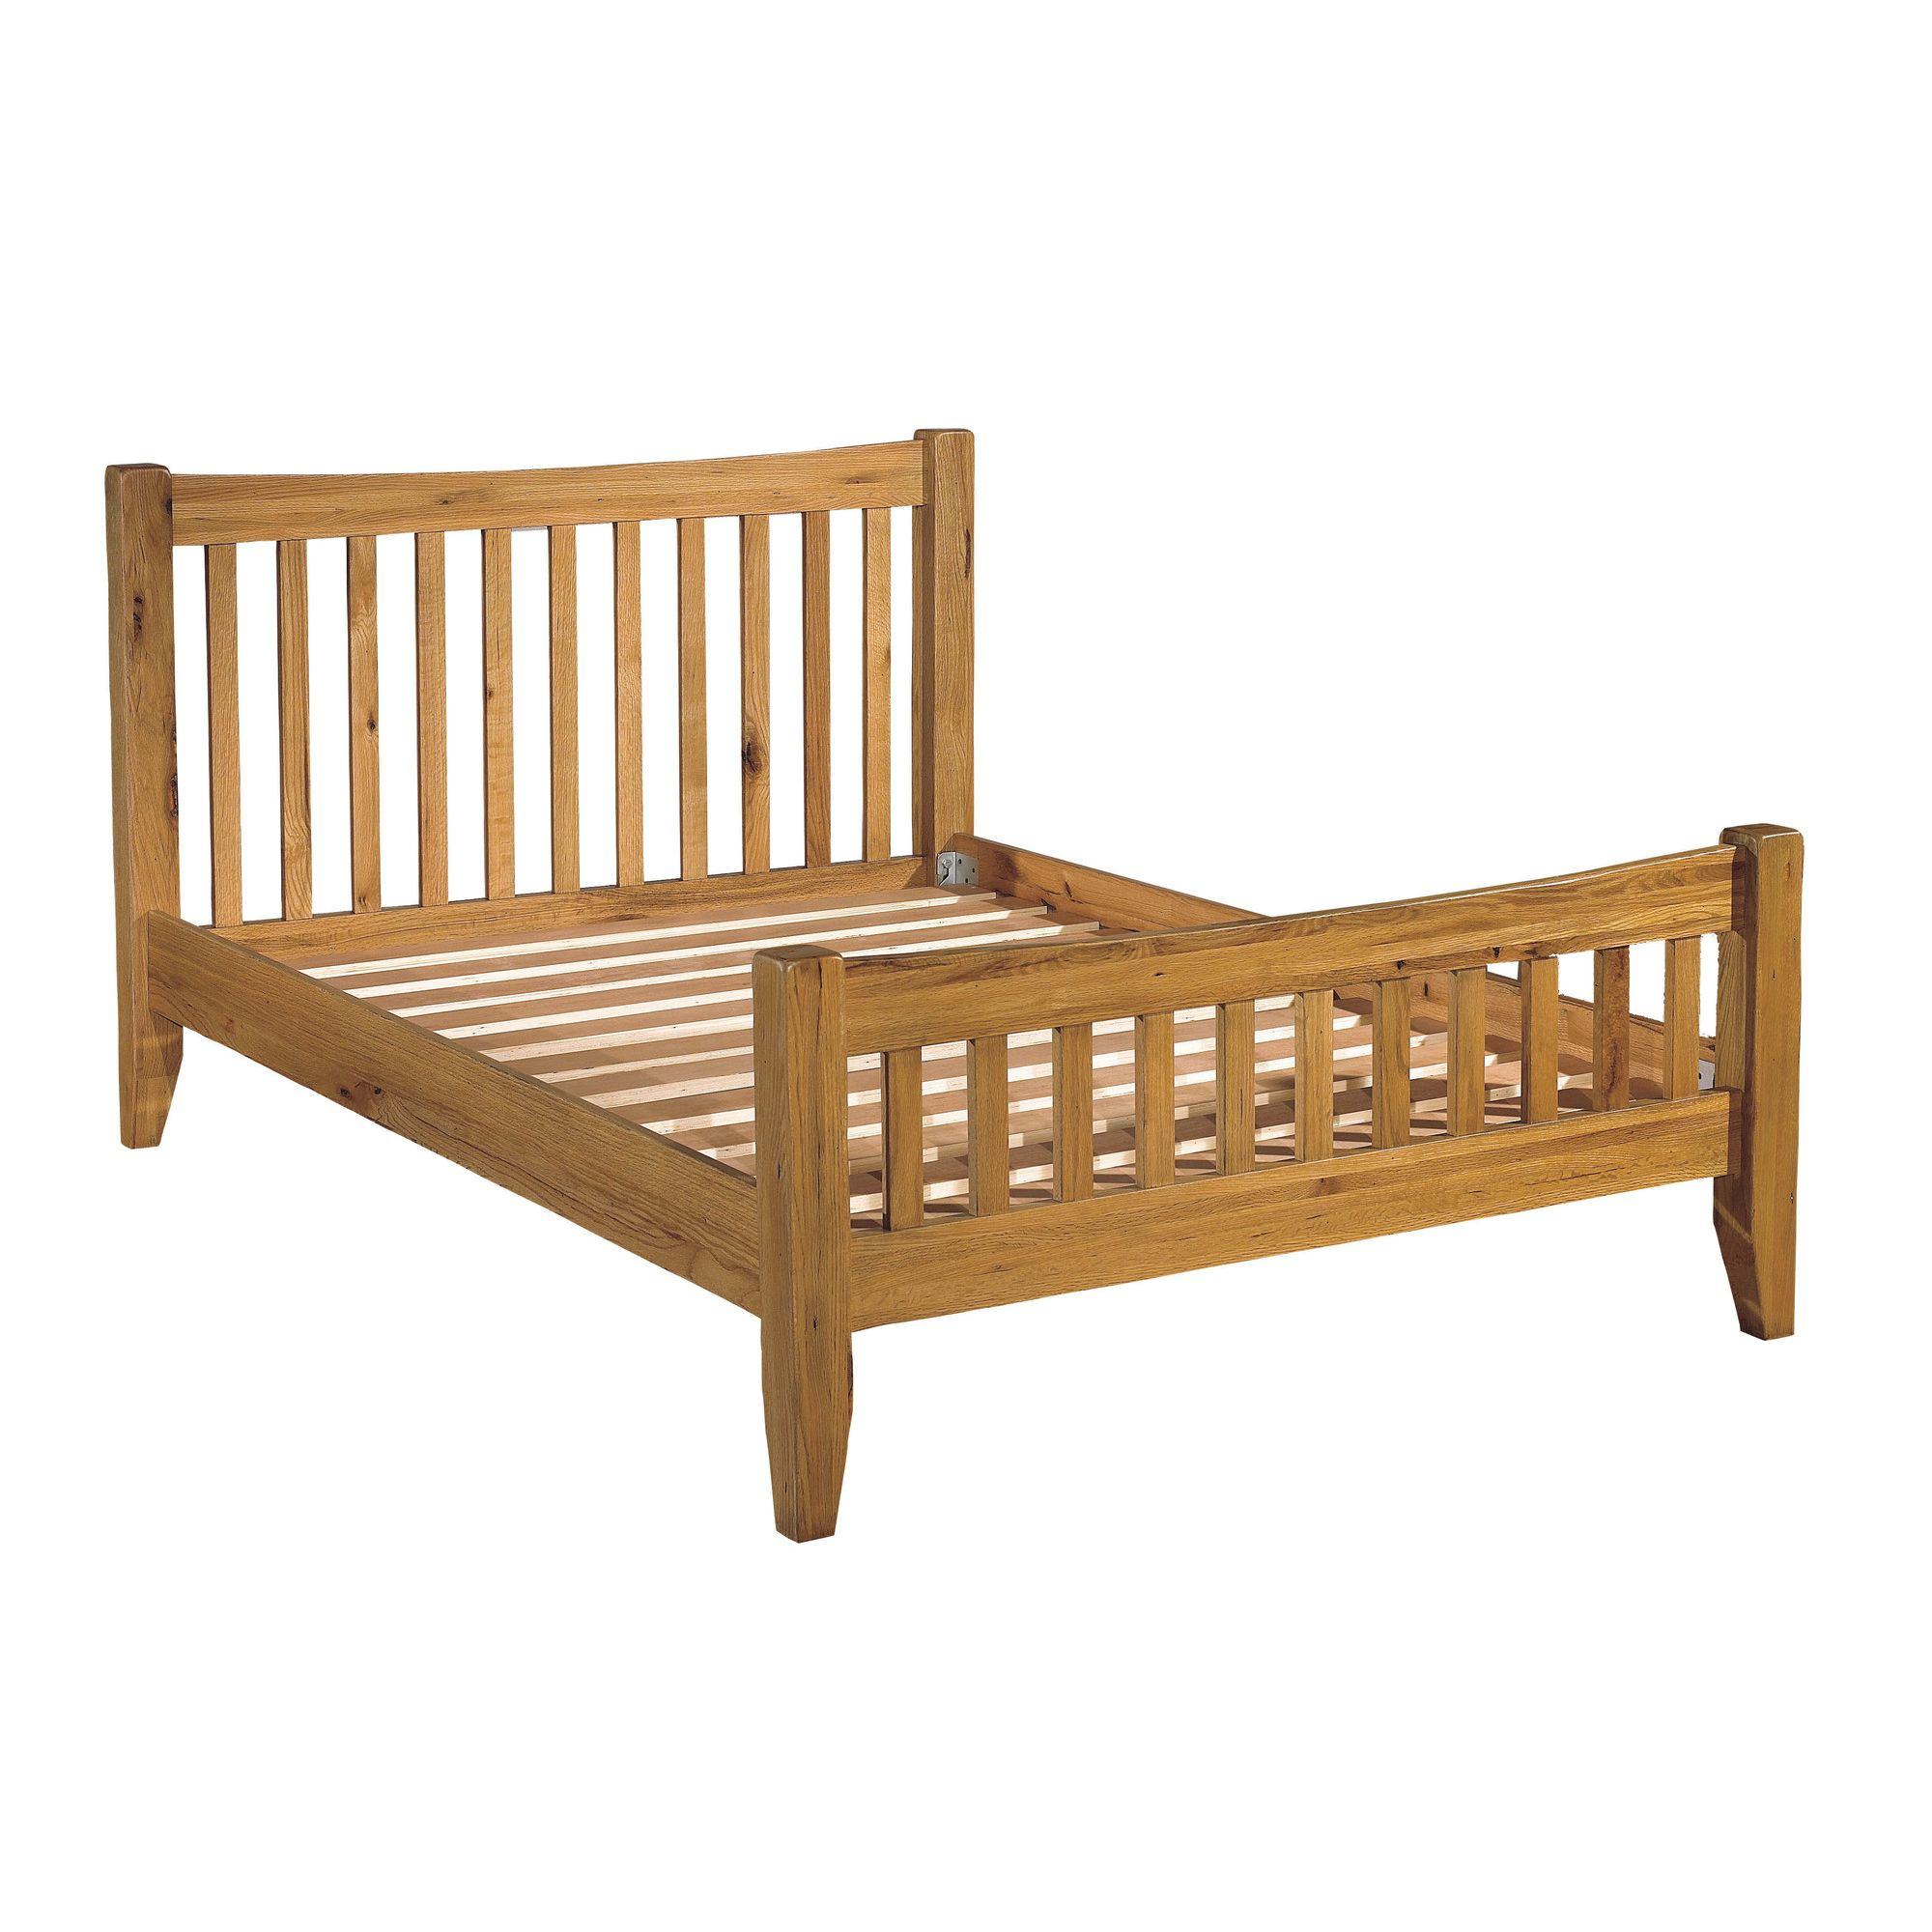 Kelburn Furniture Parnell Bed Frame - Double at Tesco Direct